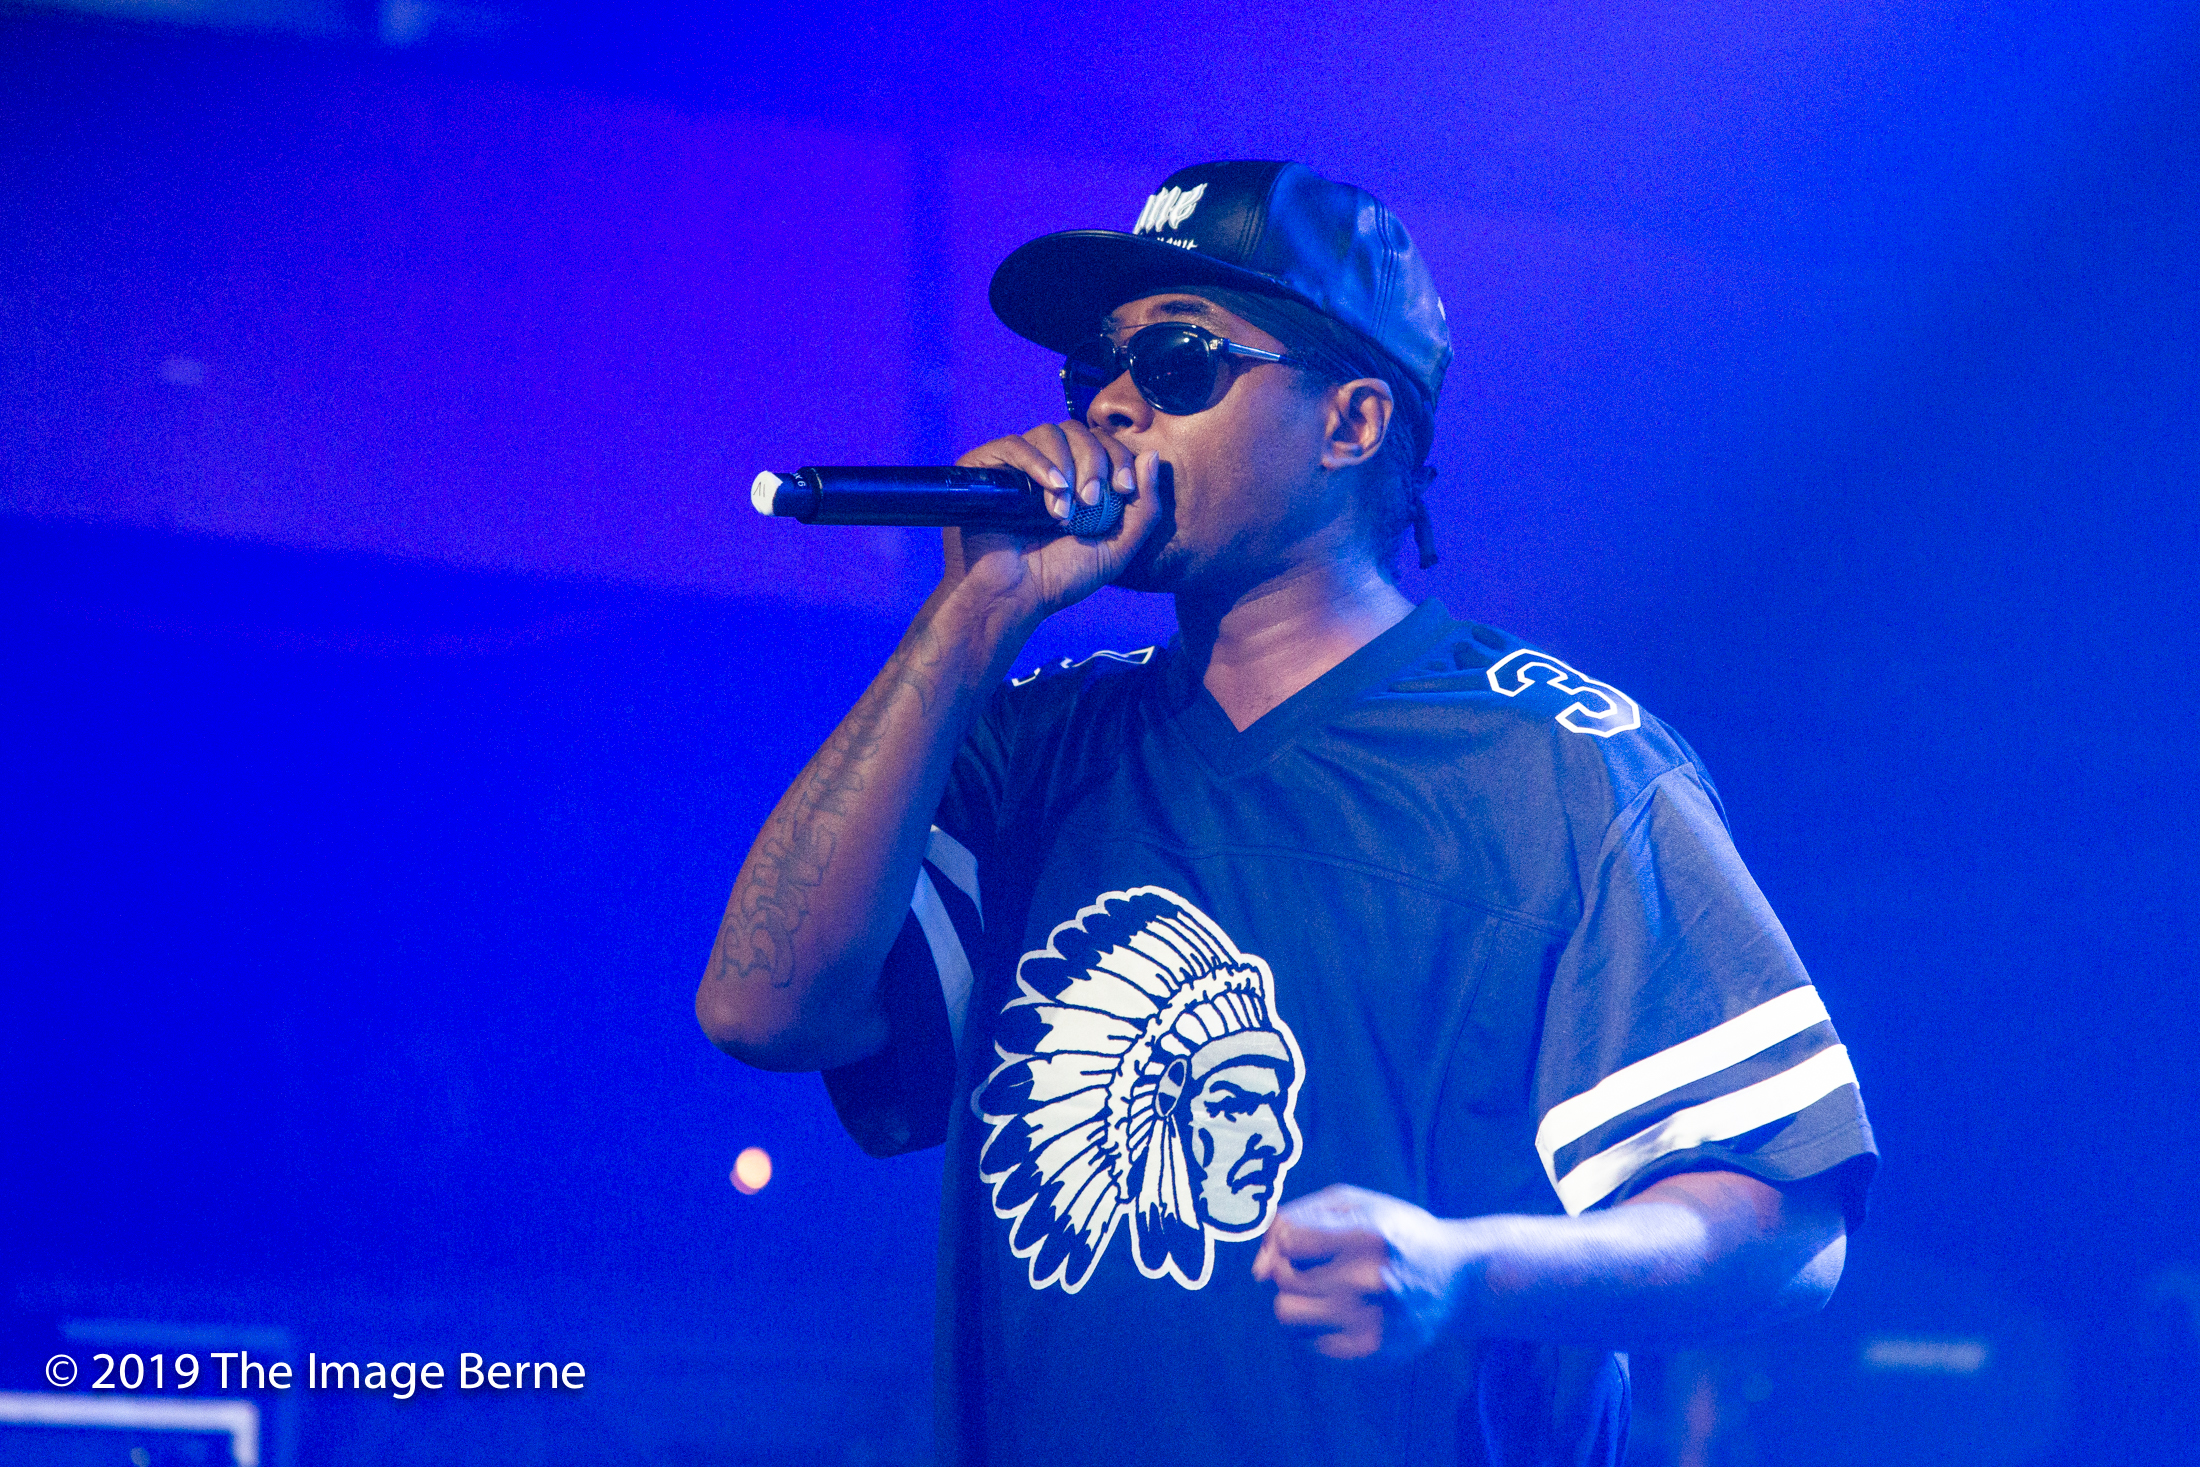 Krayzie Bone, Wish Bone, Flesh-N-Bone, Layzie Bone, and Bizzy Bone-118.jpg